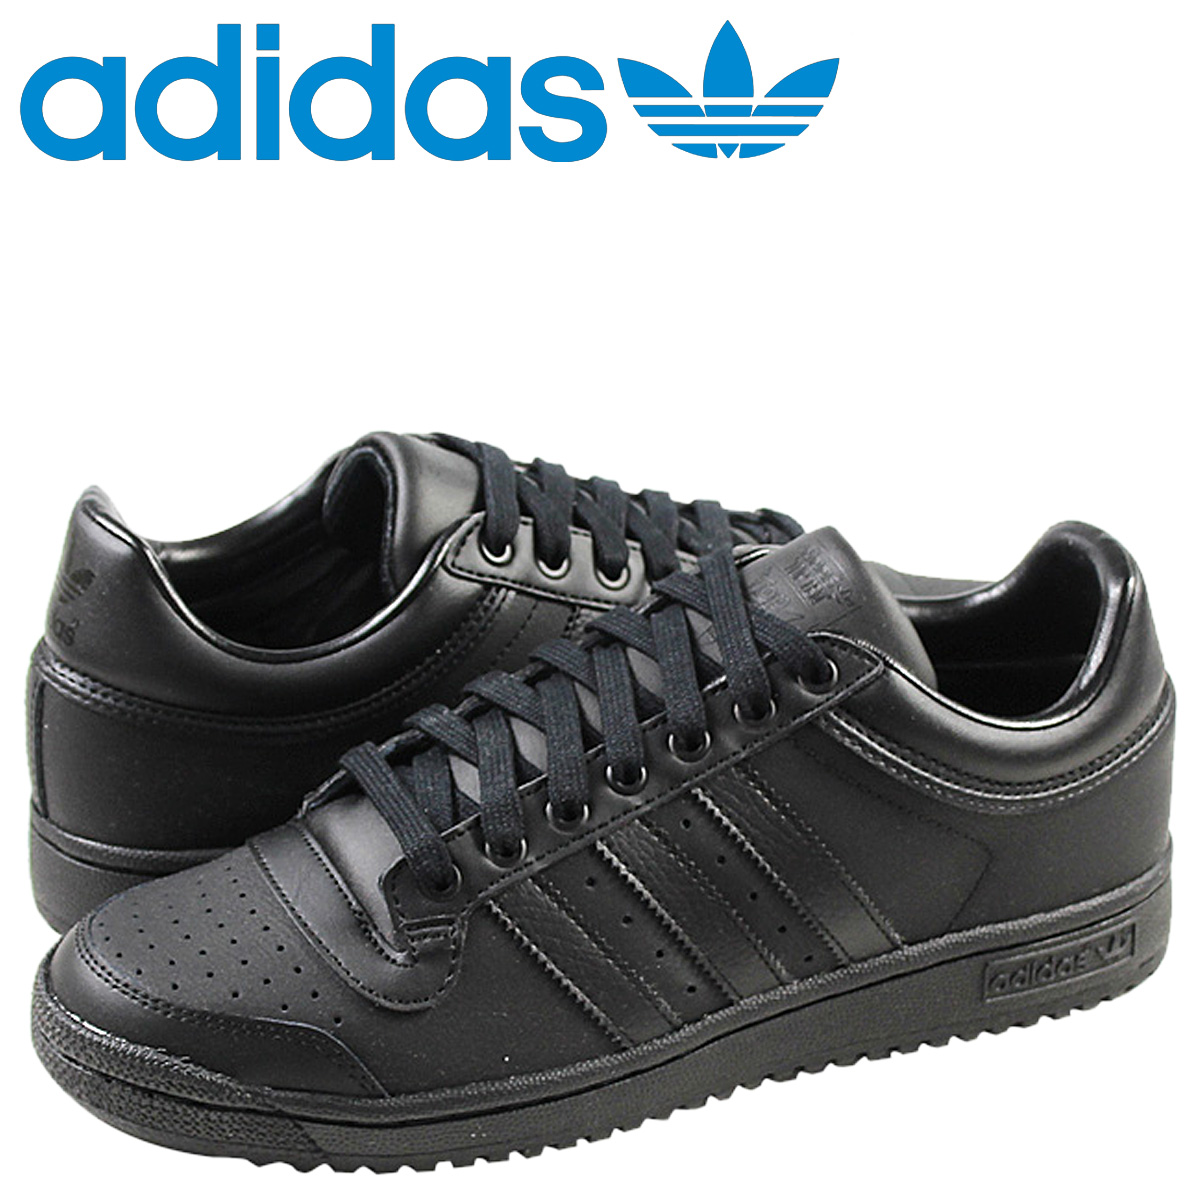 8e42b7f1 Classic Mark symbolizes the adidas three lines are simple yet also said the  face of the brand impact, which is employed in the classic